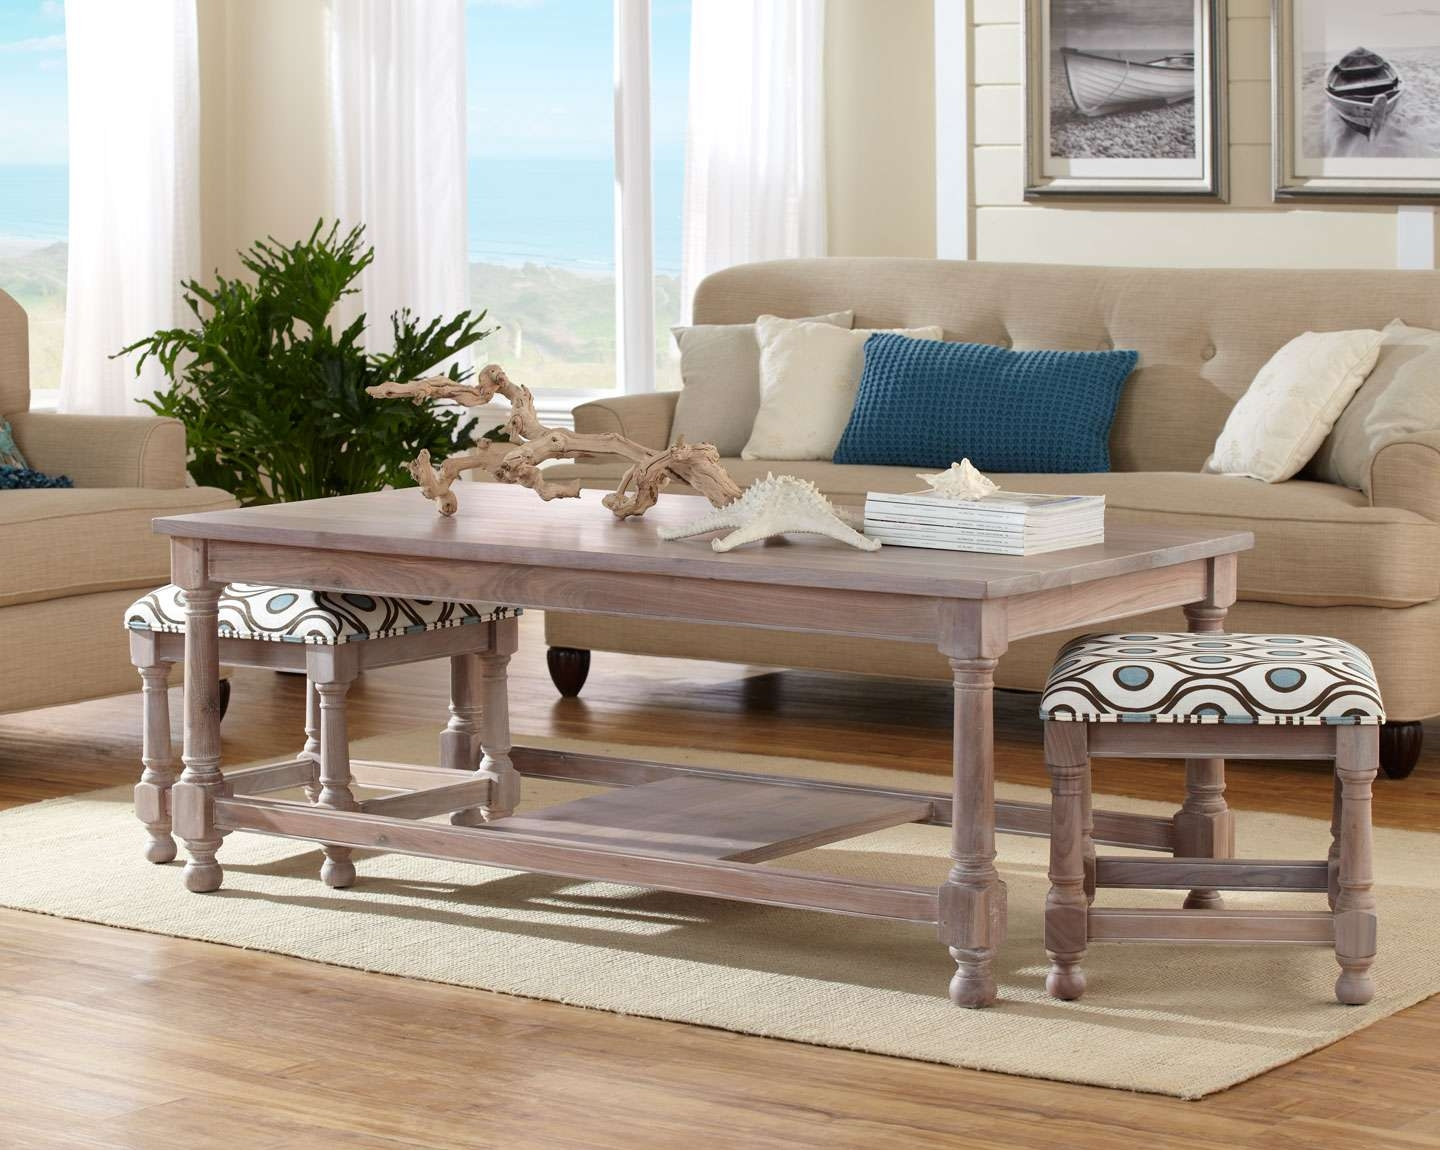 Preferred Coffee Tables With Nesting Stools With Stool Coffee Table – Home Design Ideas And Pictures (View 4 of 20)